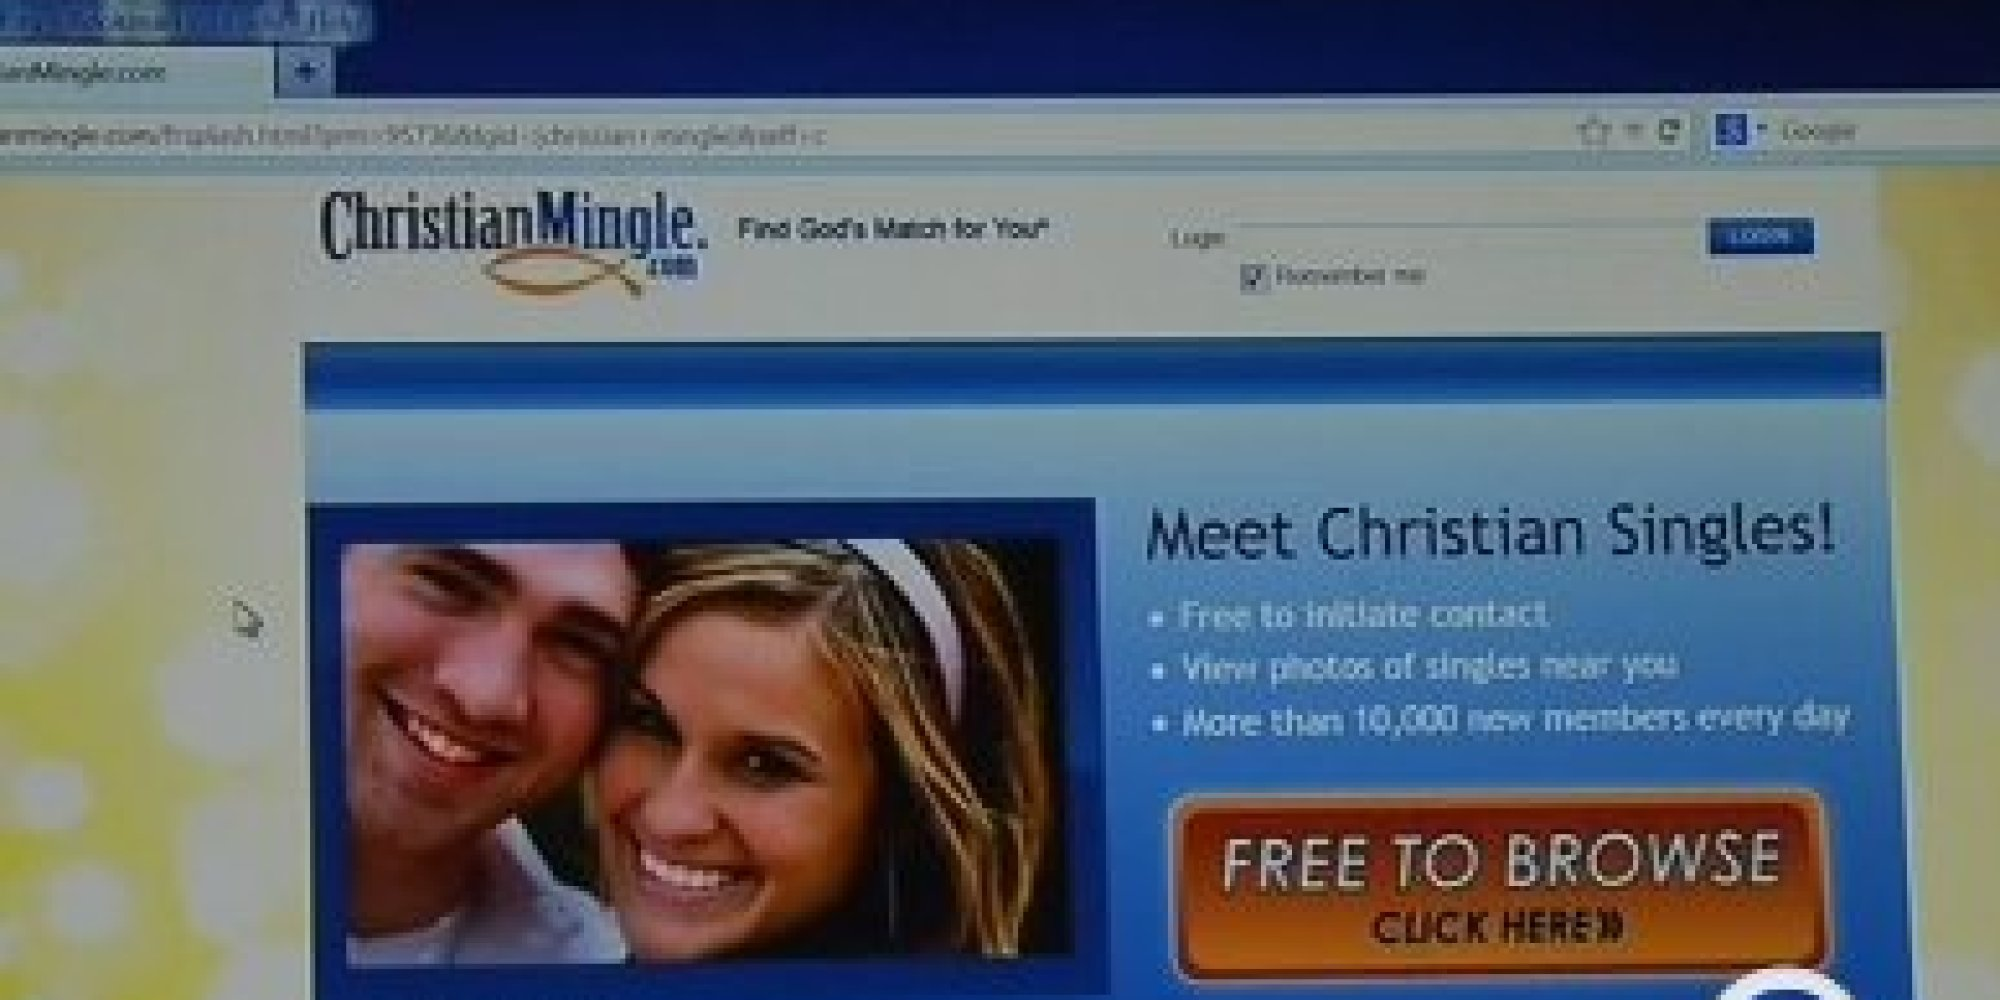 north marshfield christian women dating site We're 100% free for dating & personals signup free and meet 1000s of local singles tonight.